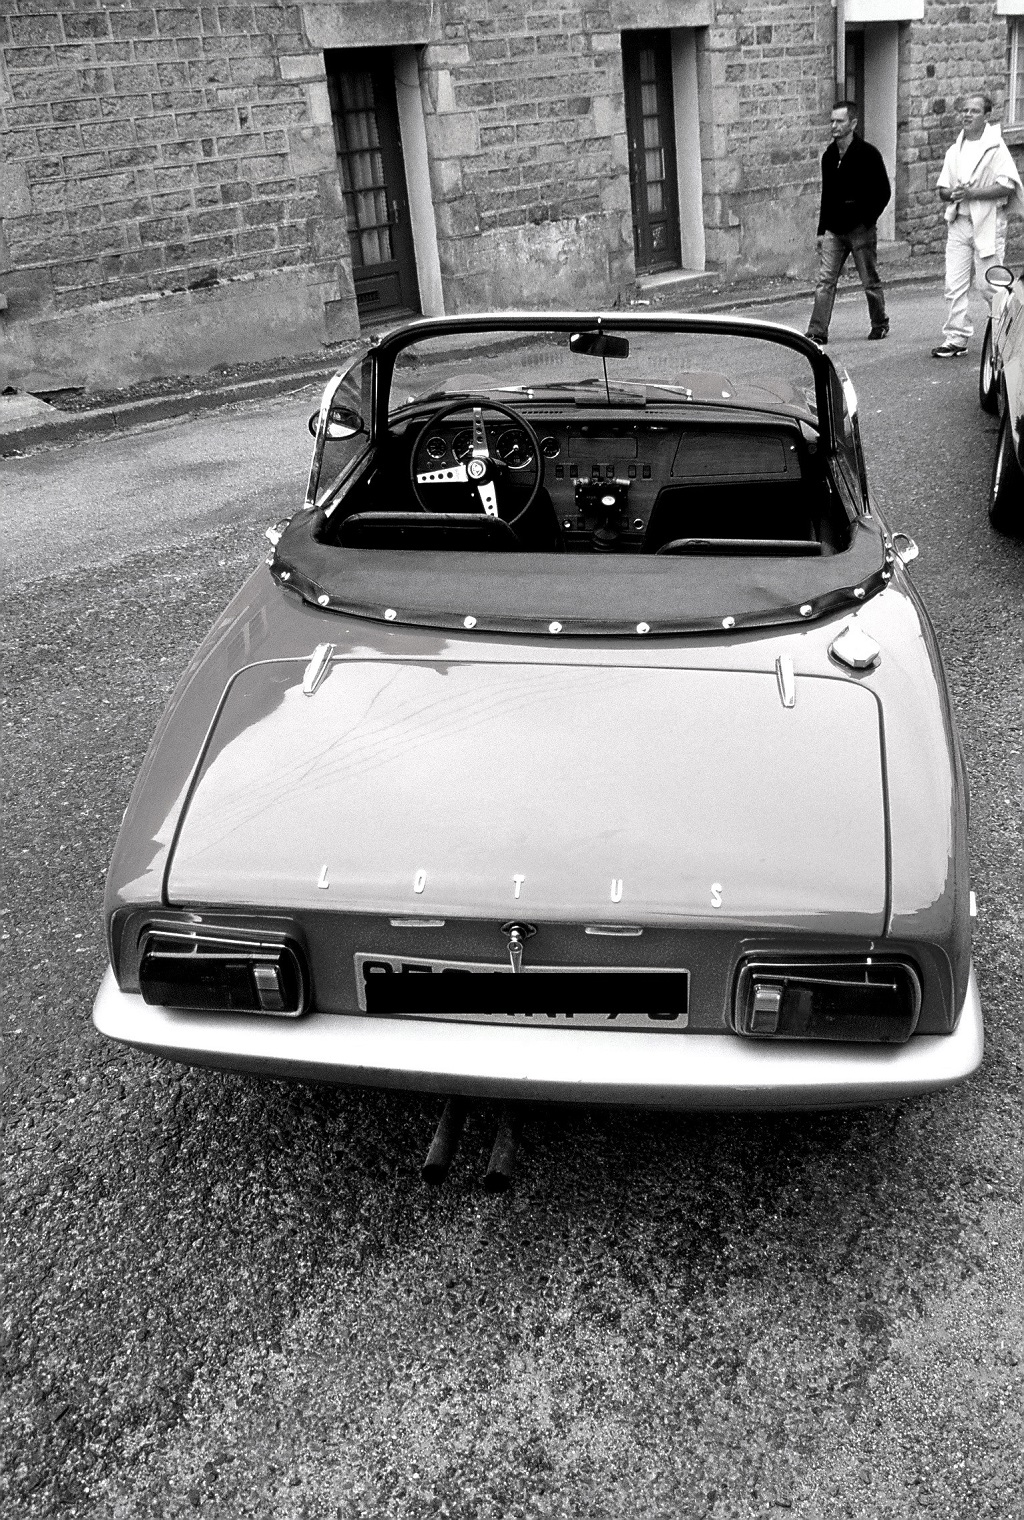 Lotus-Elan - Saint-Gouëno - Photo-Thierry-Le-Bras